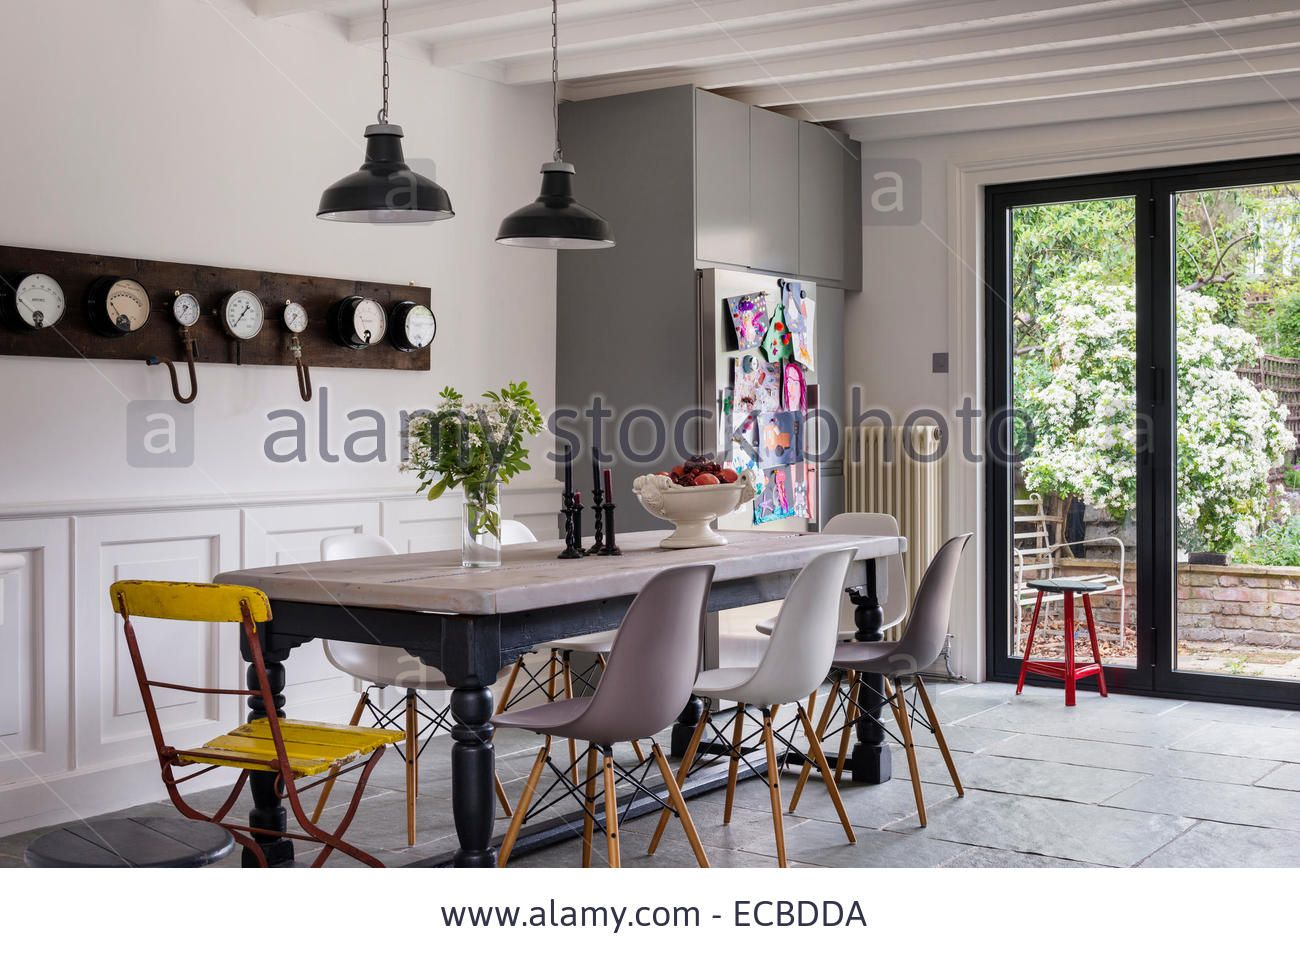 Eames eiffel chair dining room - Explore White Chairs Farmhouse Table And More Eames Eiffel